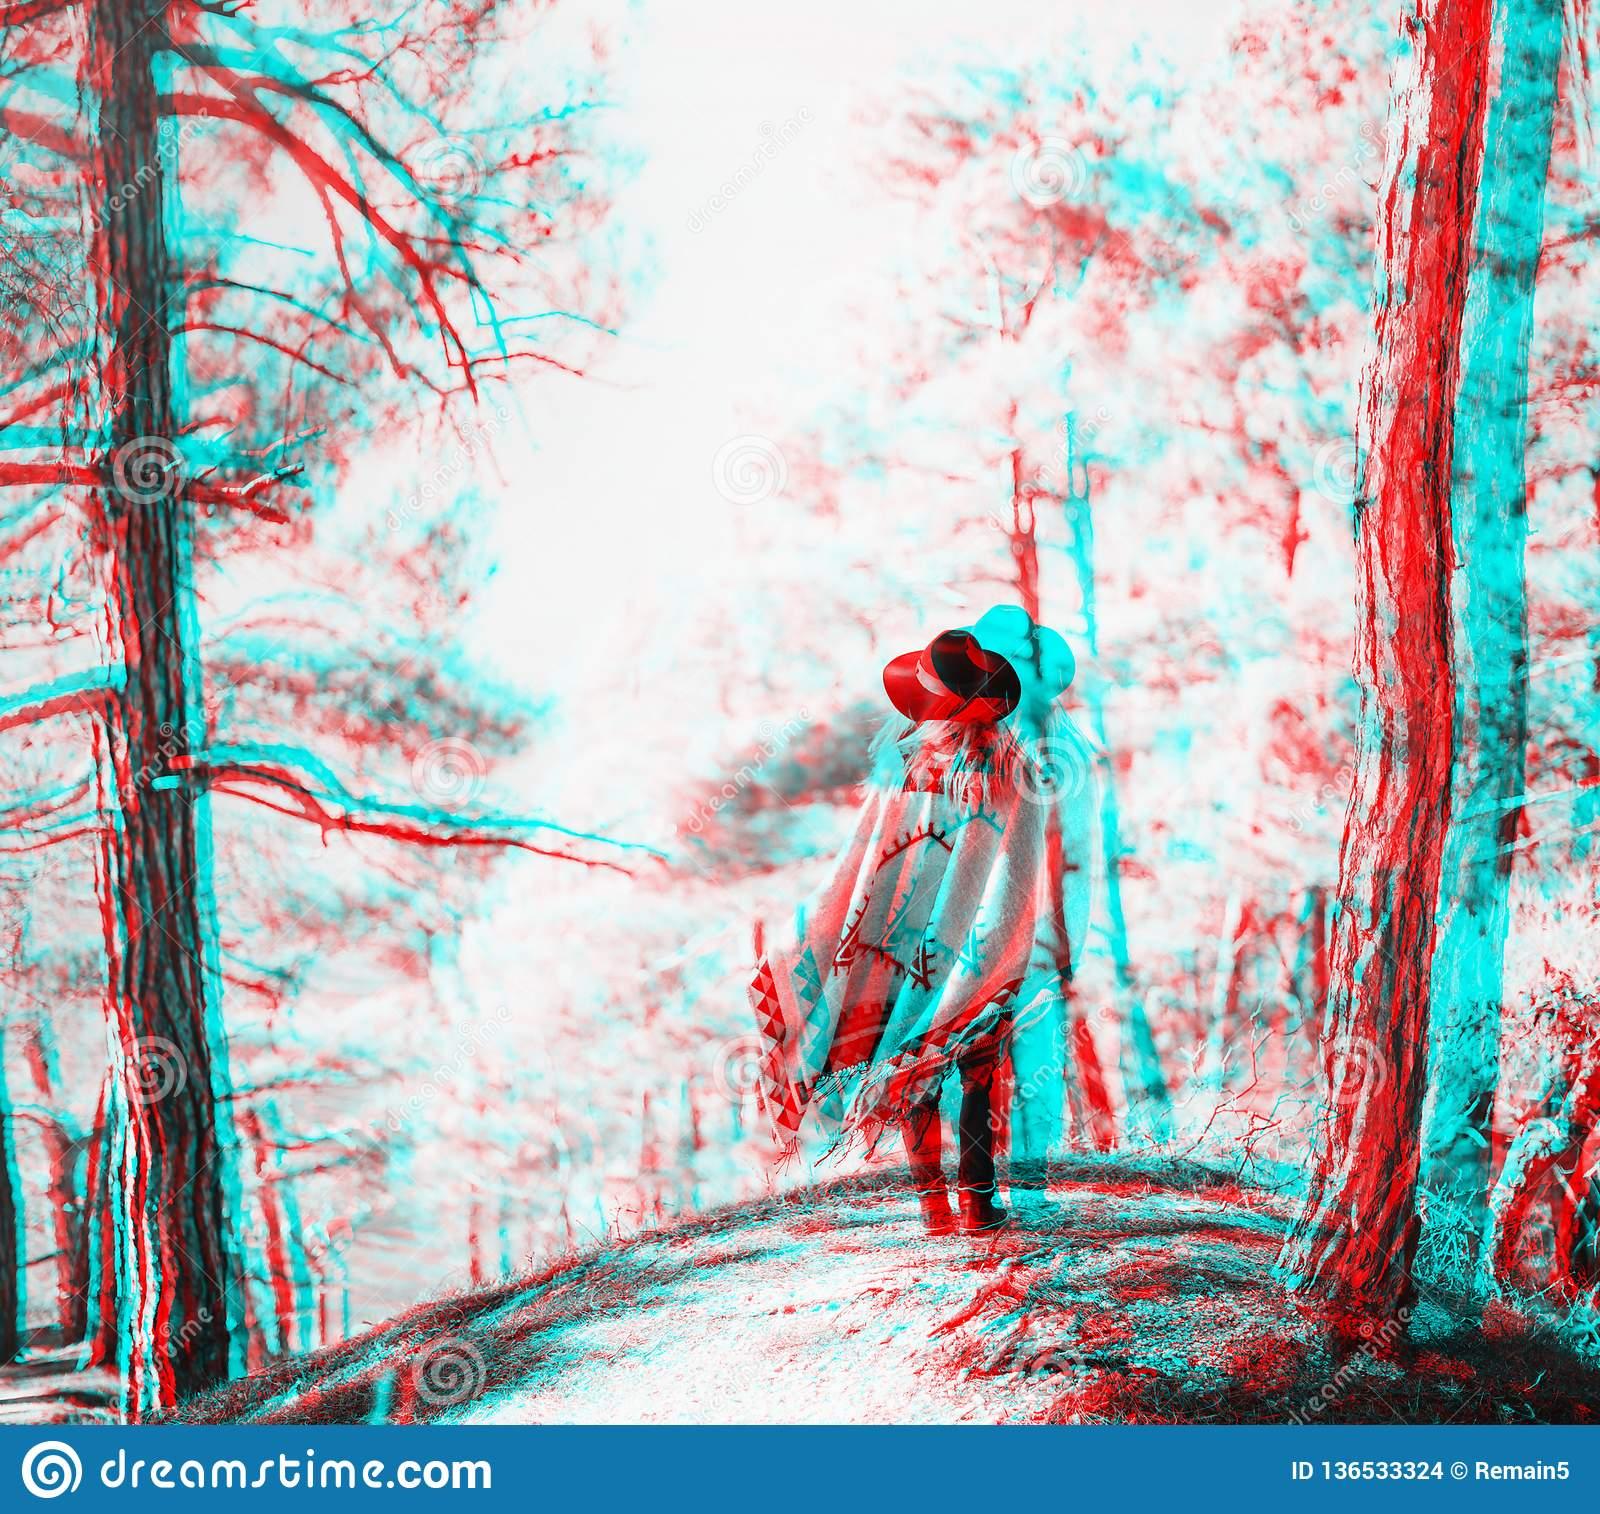 Anaglyph effect of woman in the forest.